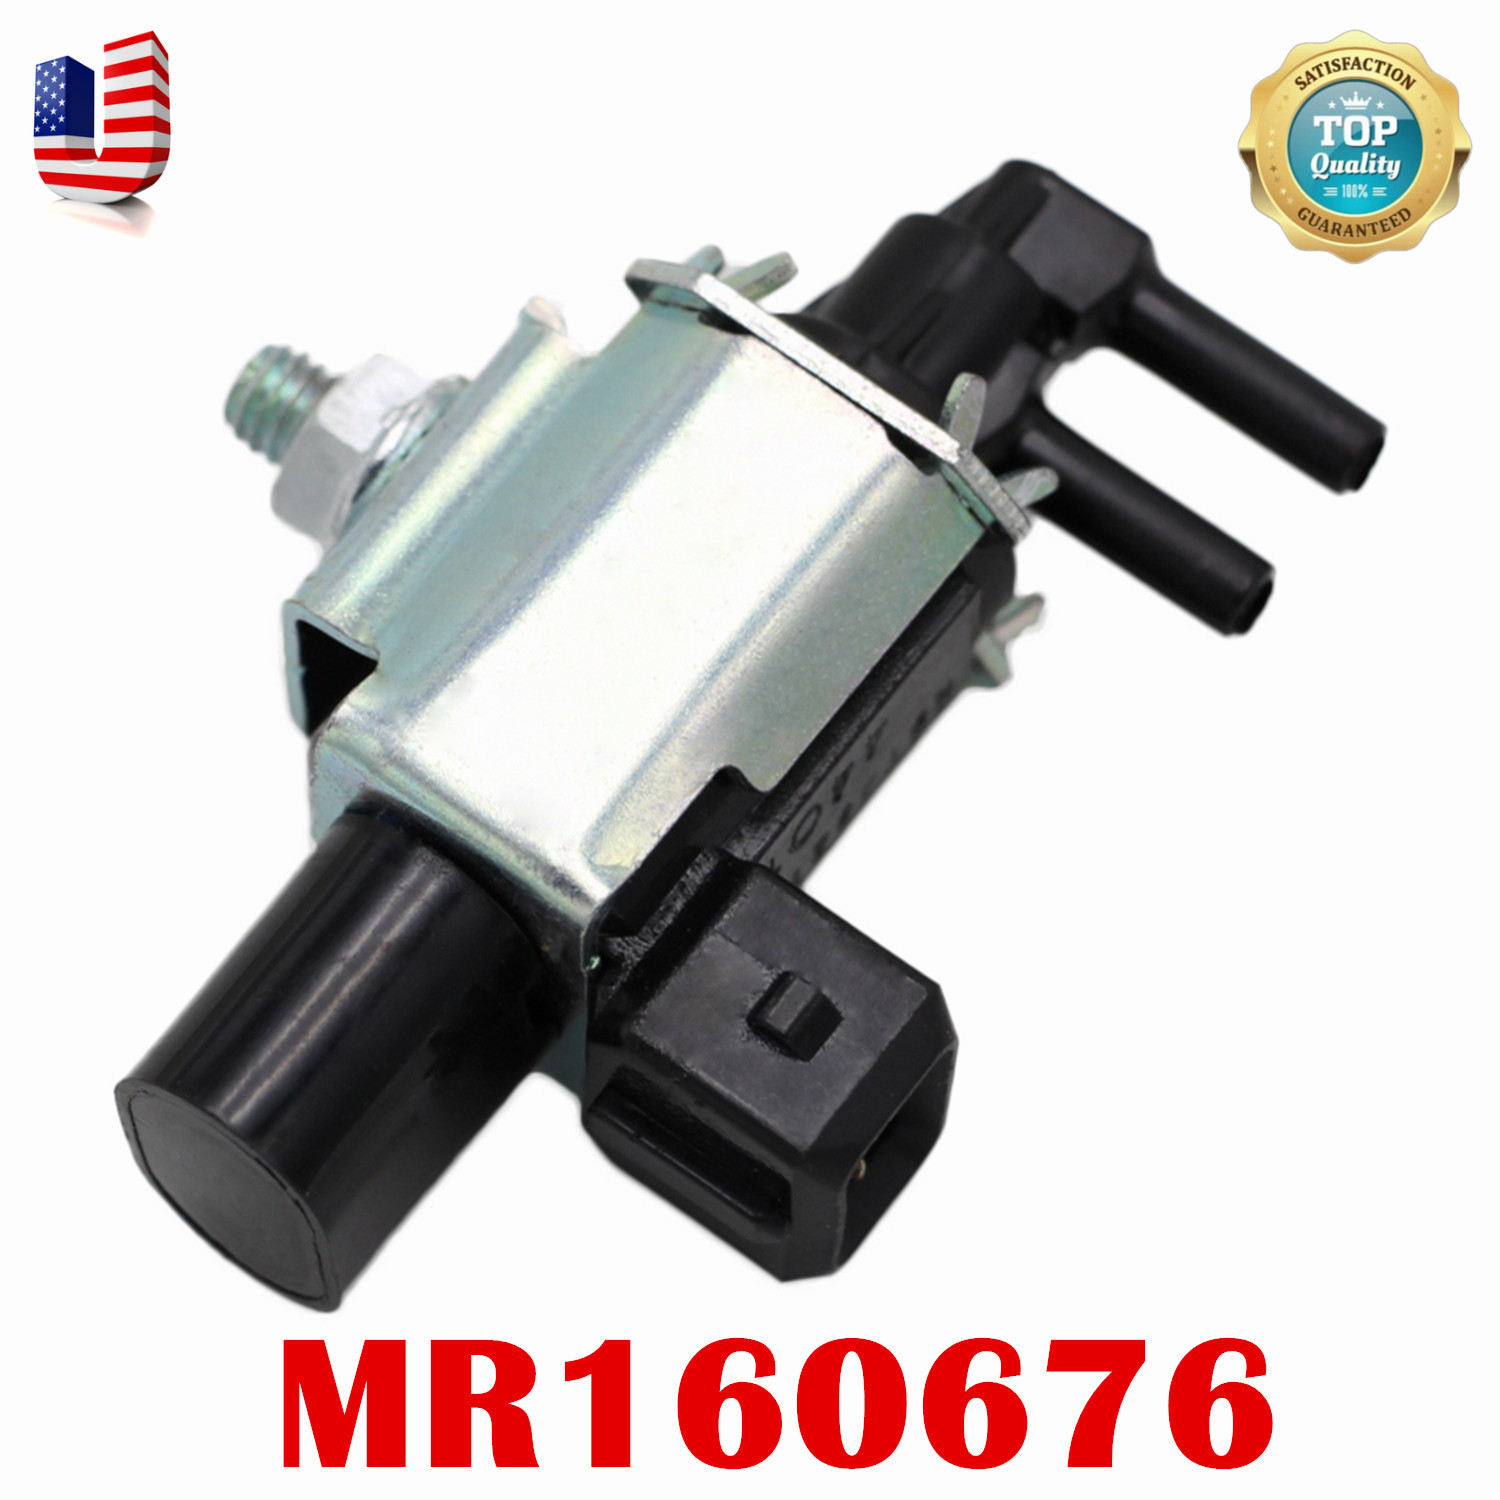 New Emission-Vacuum Valve for Mitsubishi Outlander 3.0L-V6 07-09 MR160676